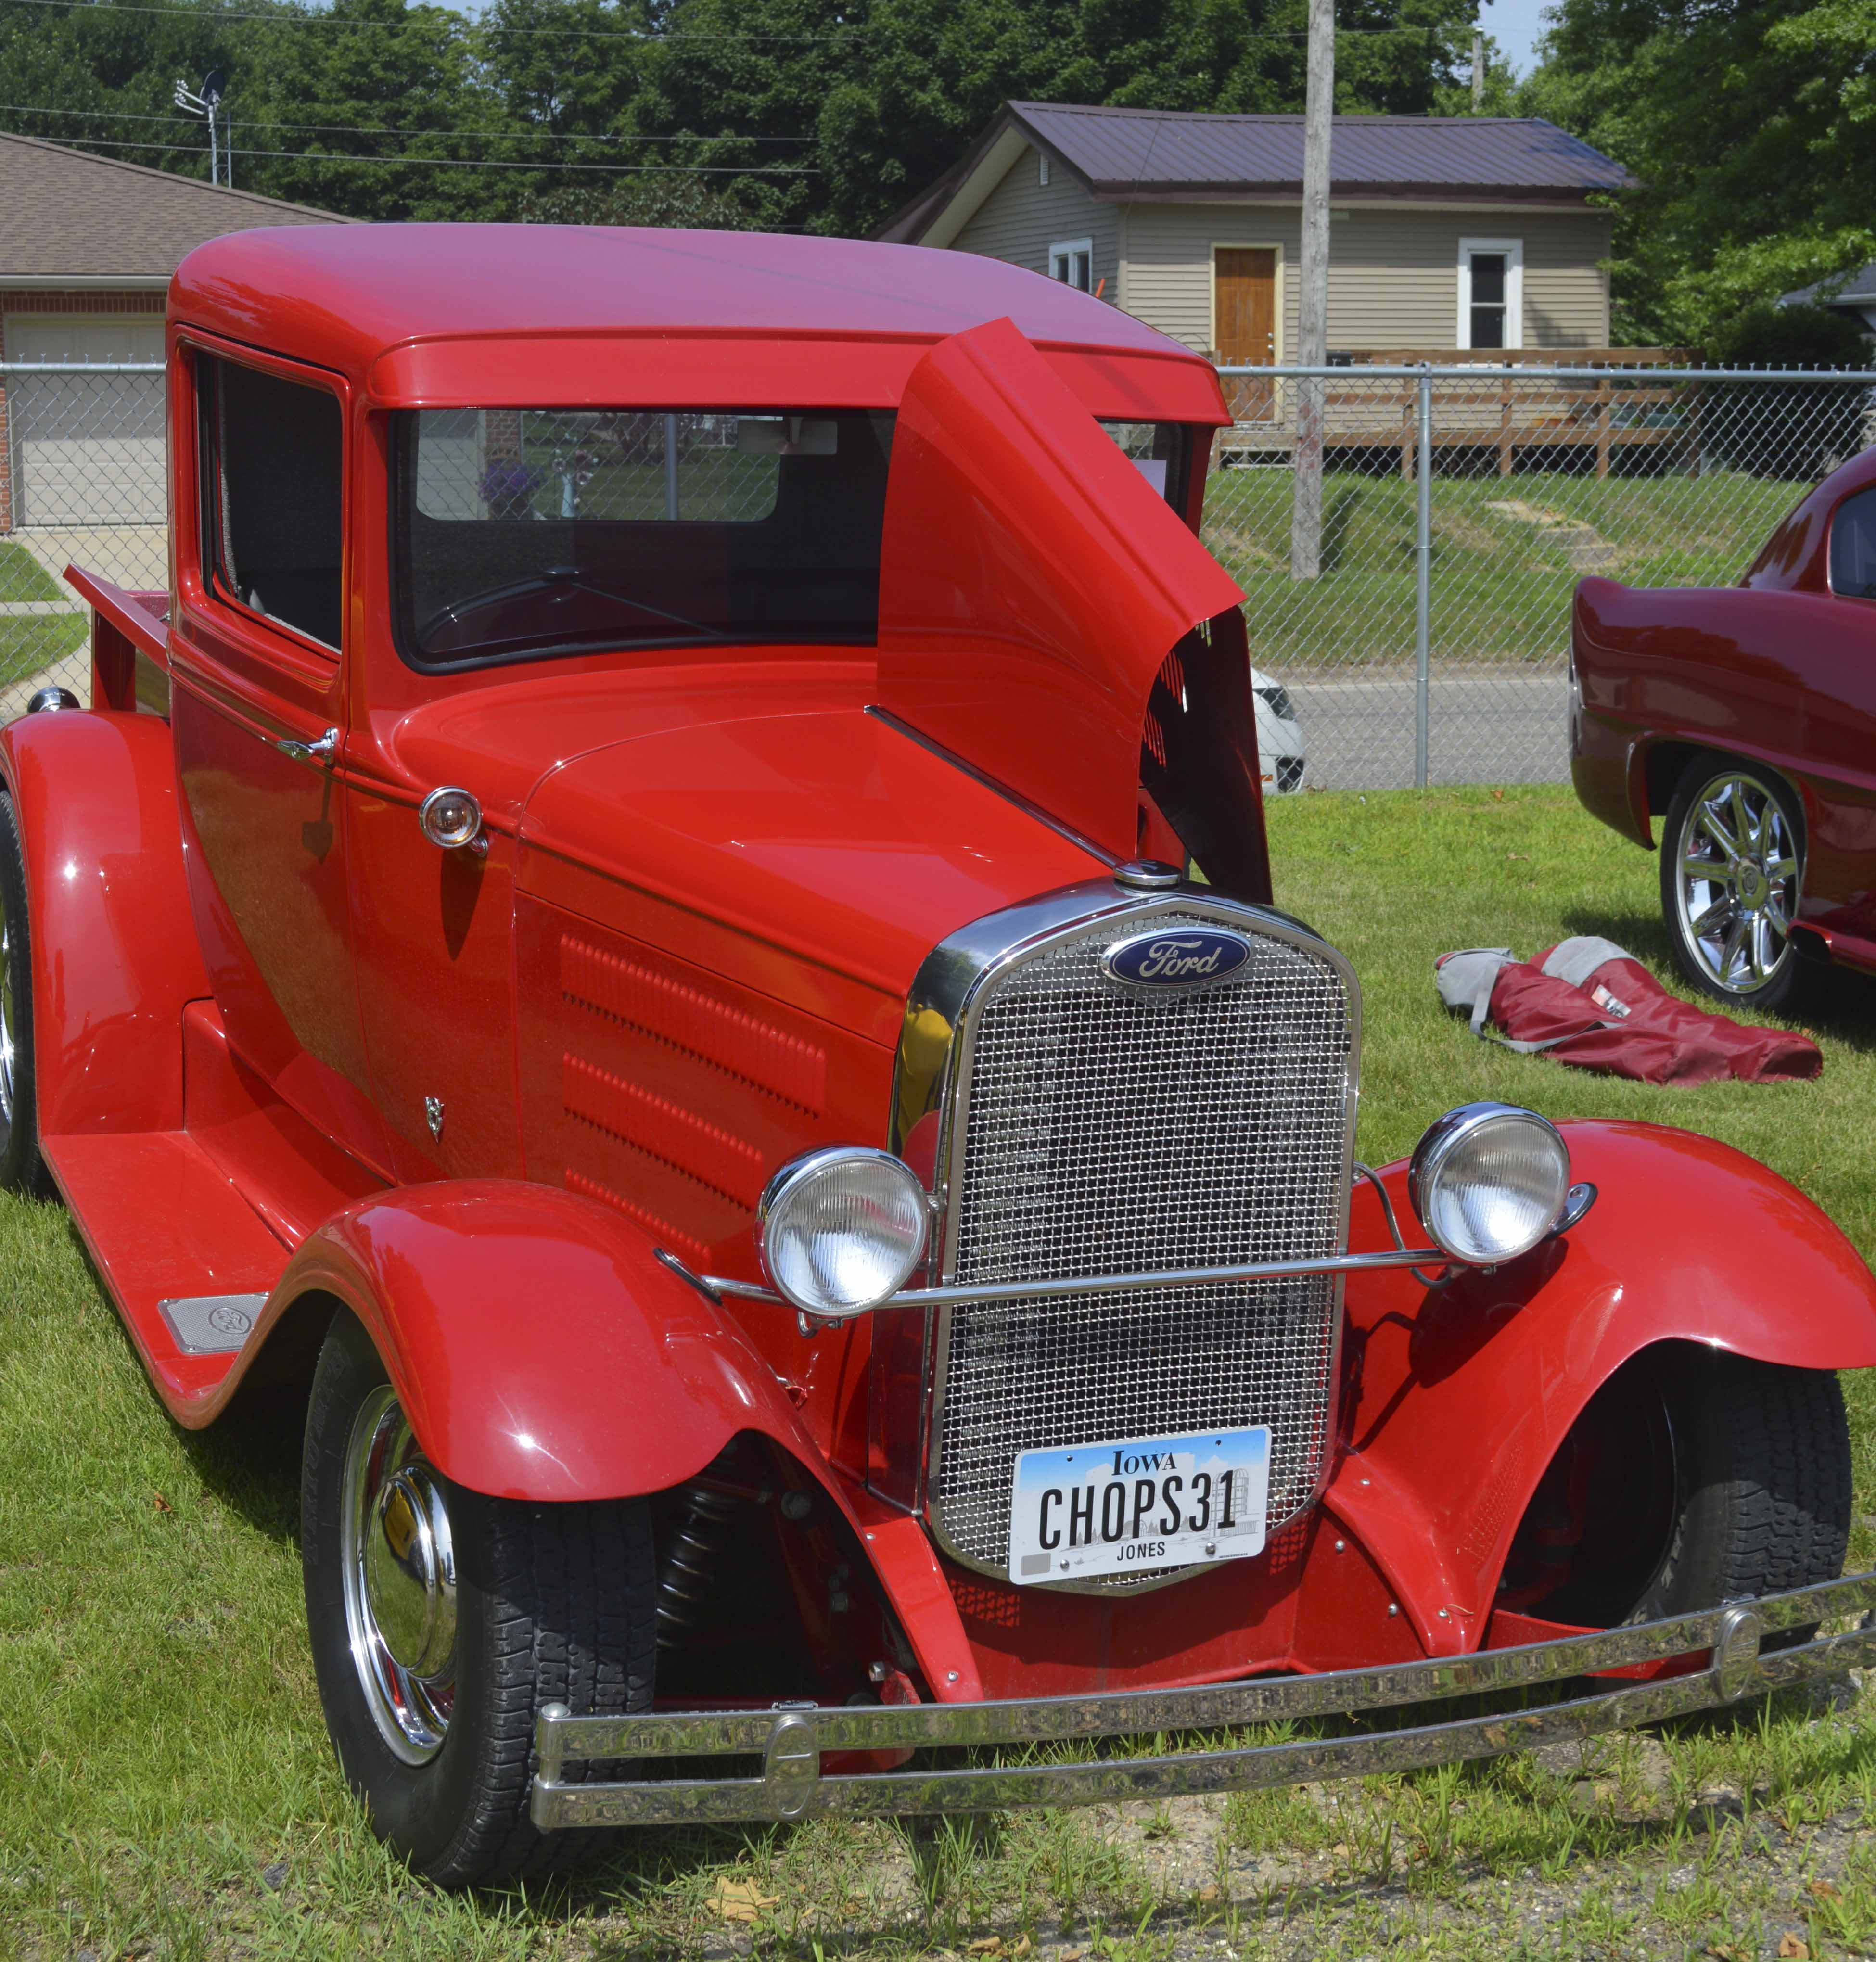 Multiple cars were on display at the fairgrounds, including this 1931 Ford Pickup owned by Mike Lambert Sr. of Monticello.